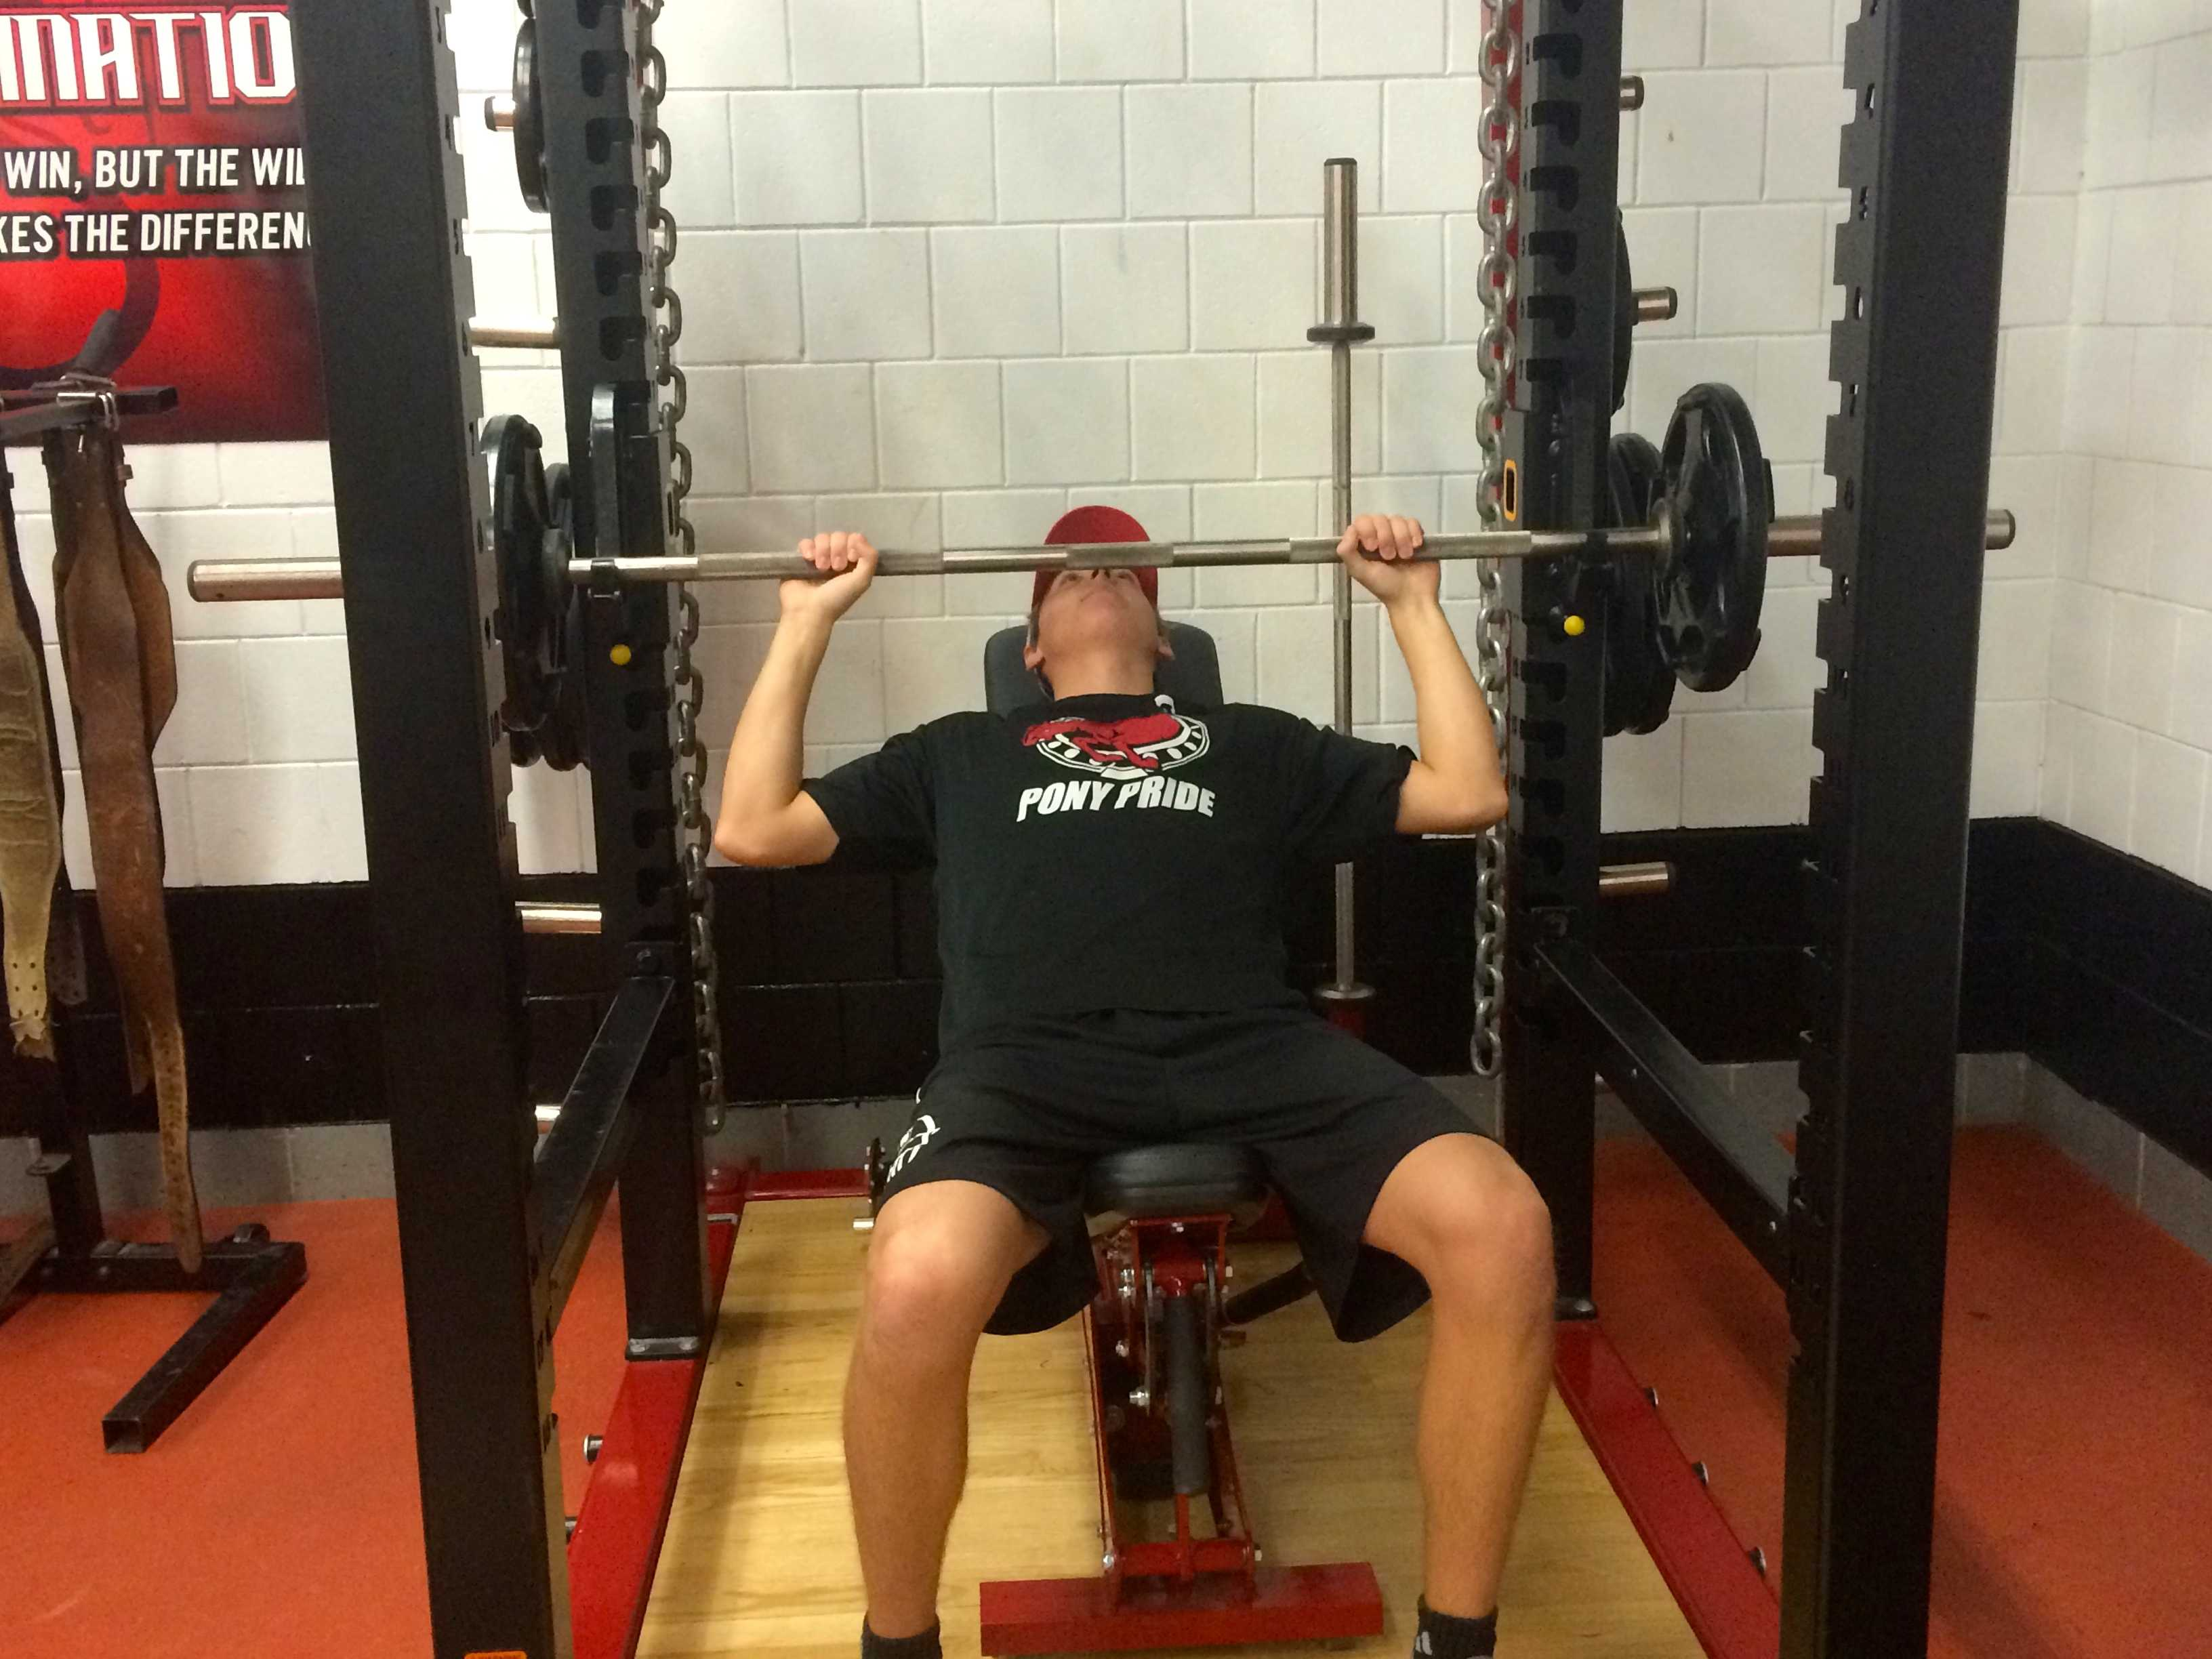 Seniors Eric Bromback and Mark Houle are improving their health in the weight room.